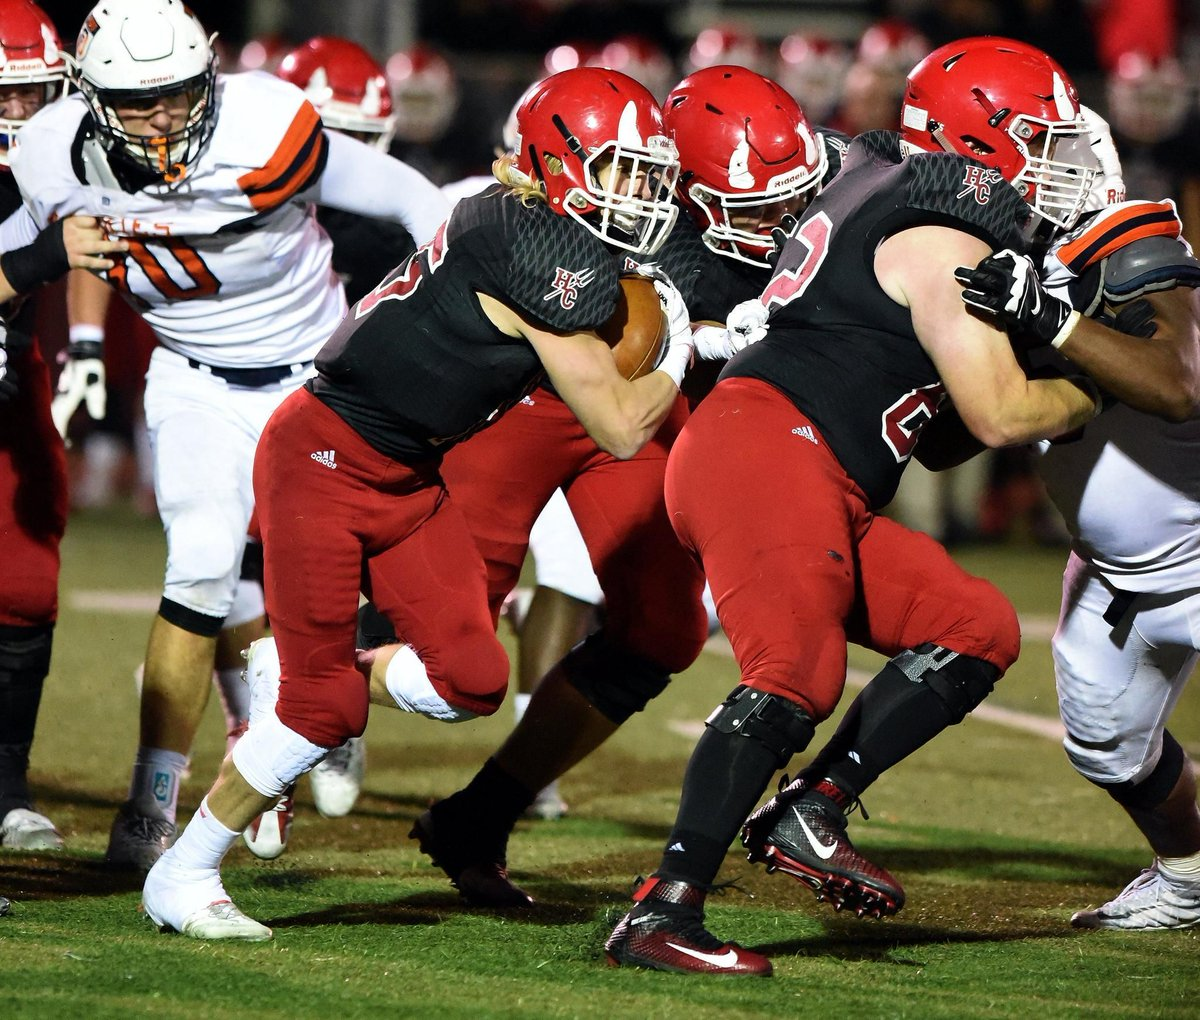 Hinsdale Central Football Club On Twitter Pioneer Press Football